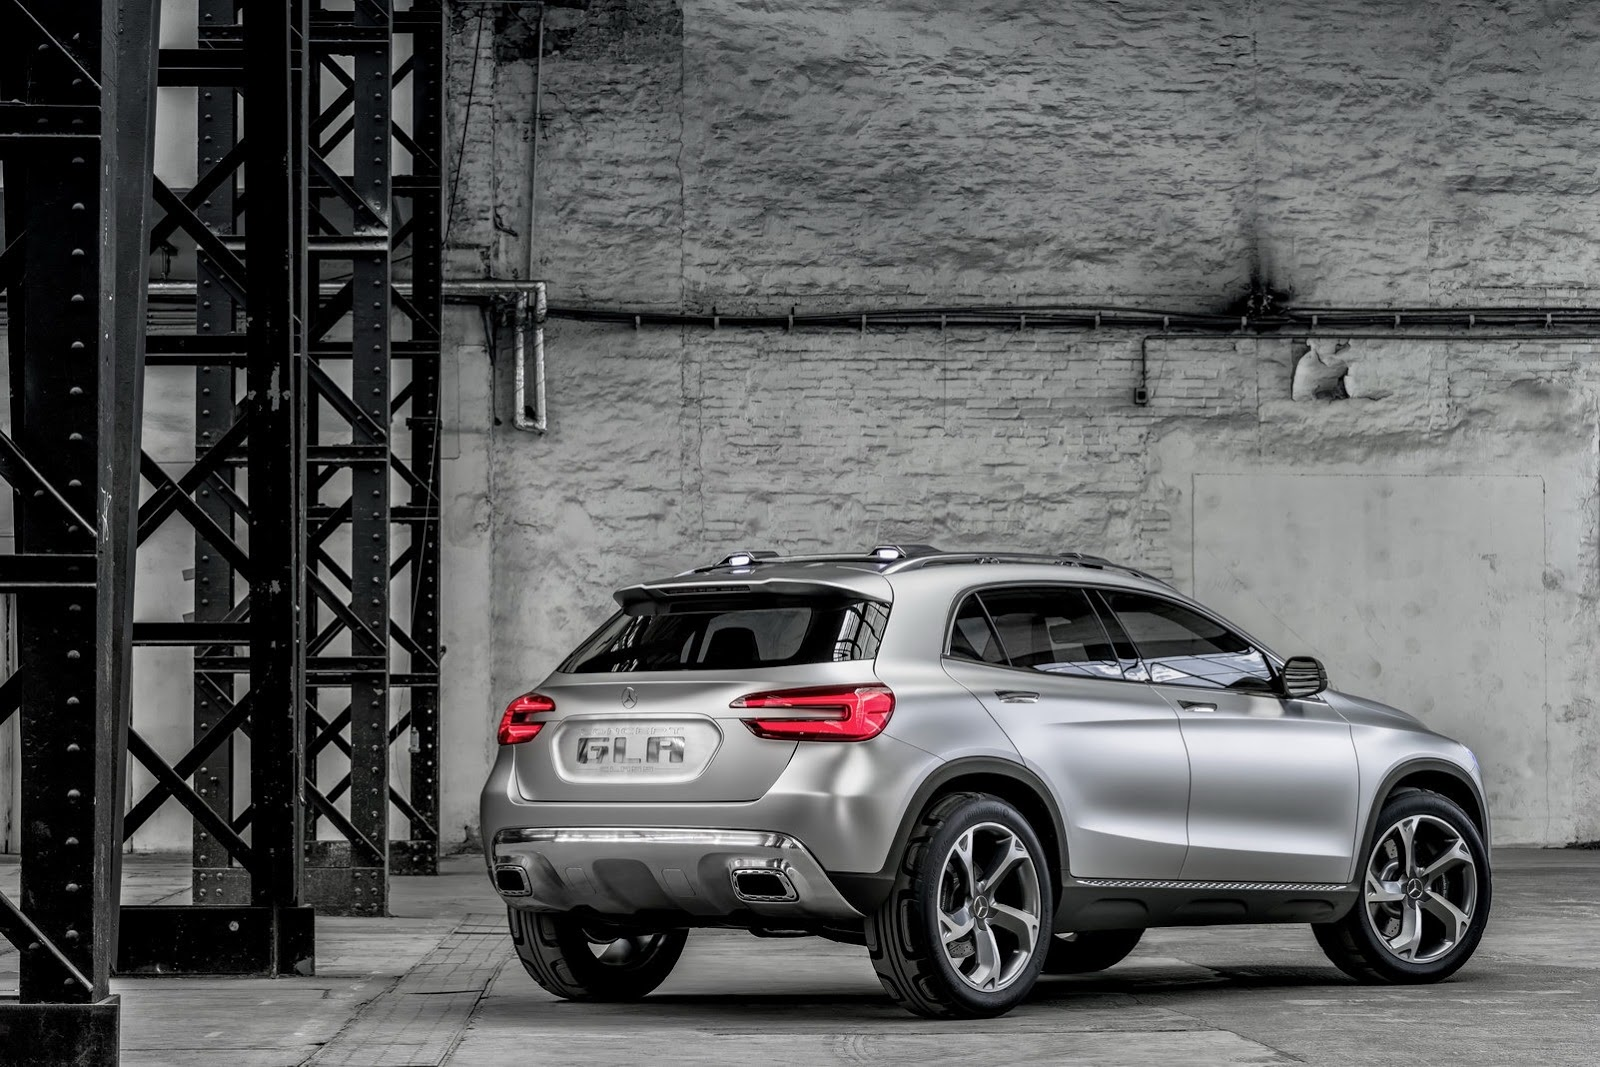 Mercedes Benz GLA 27 Mercedes Benz GLA